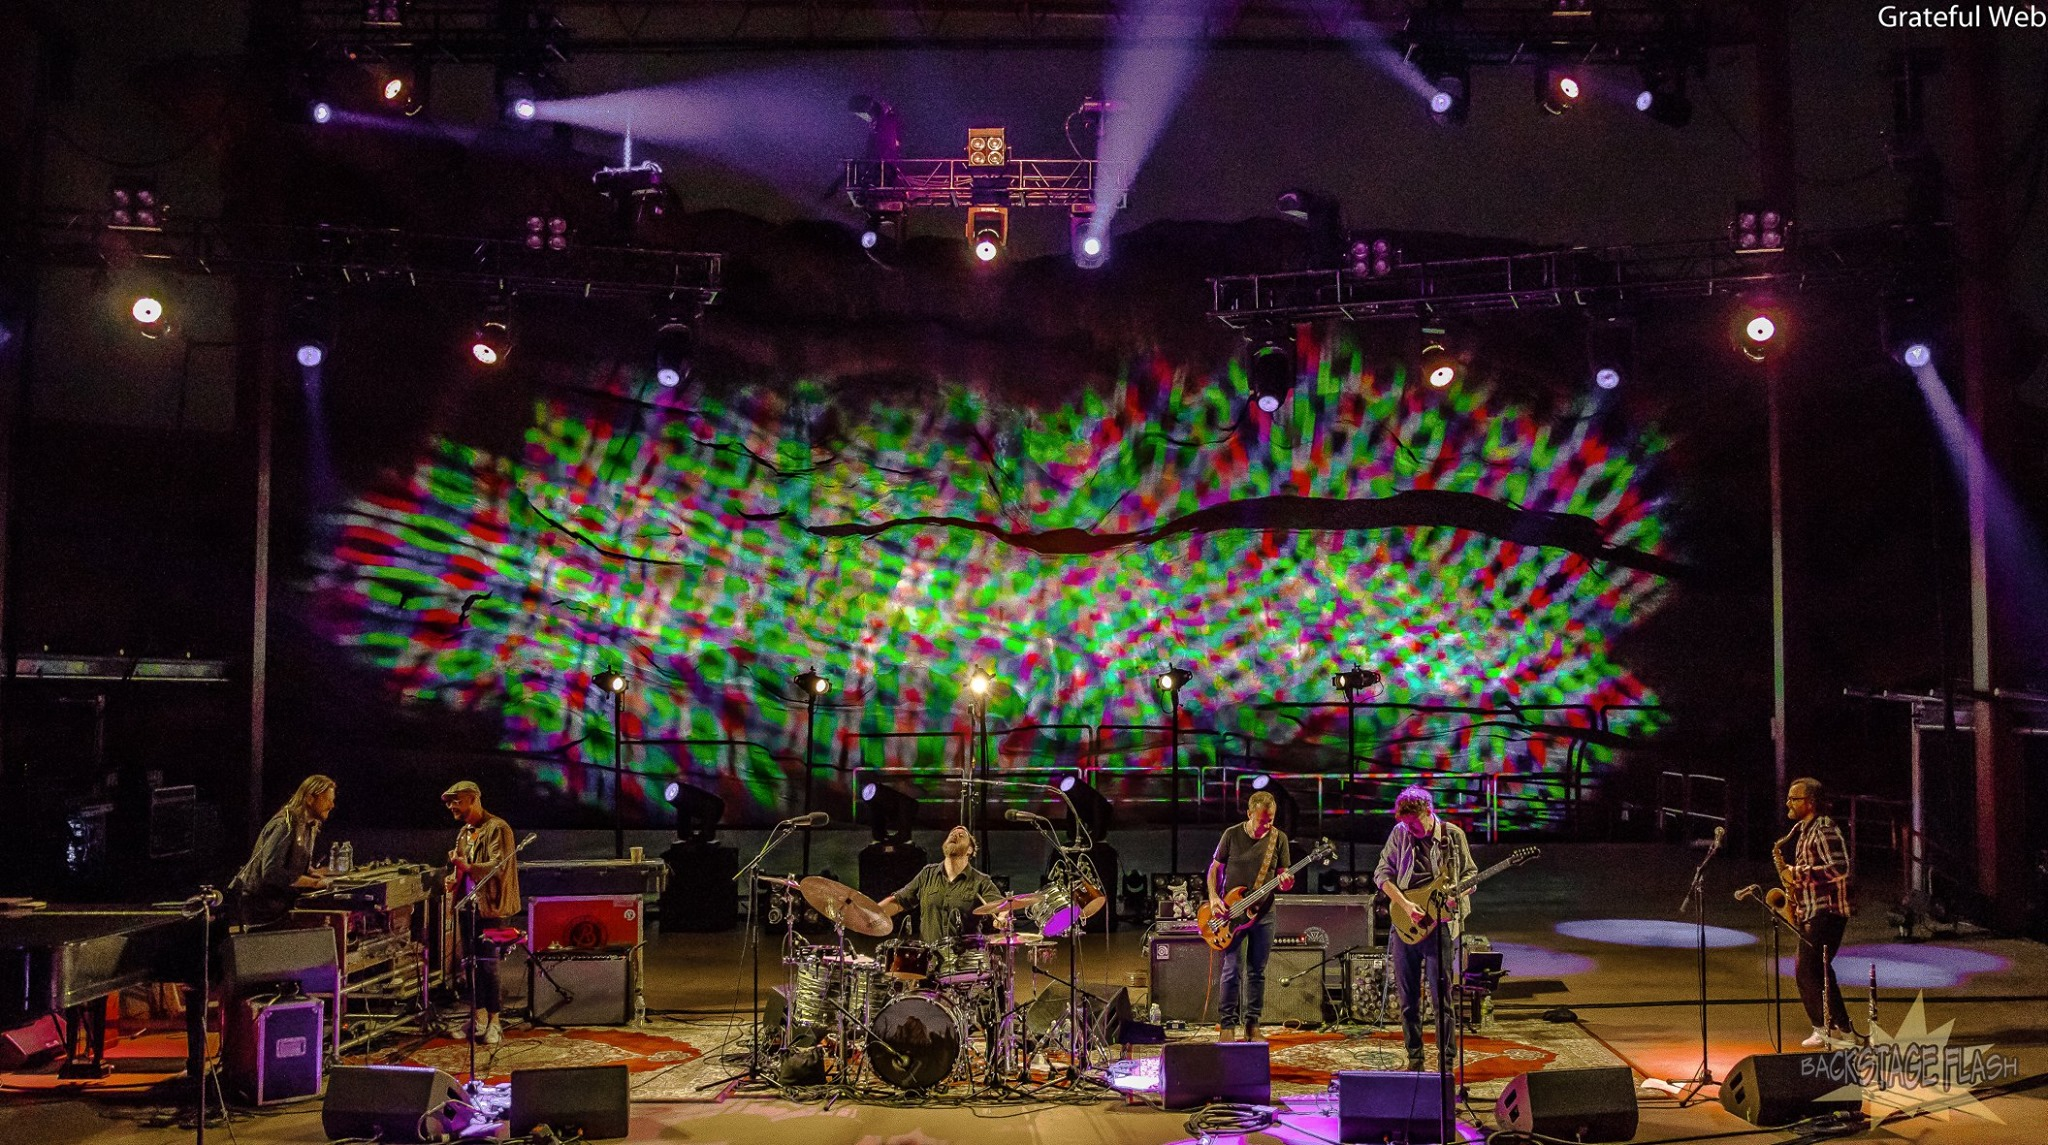 Joe Russo's Almost Dead | Morrison, CO | 8/29/19